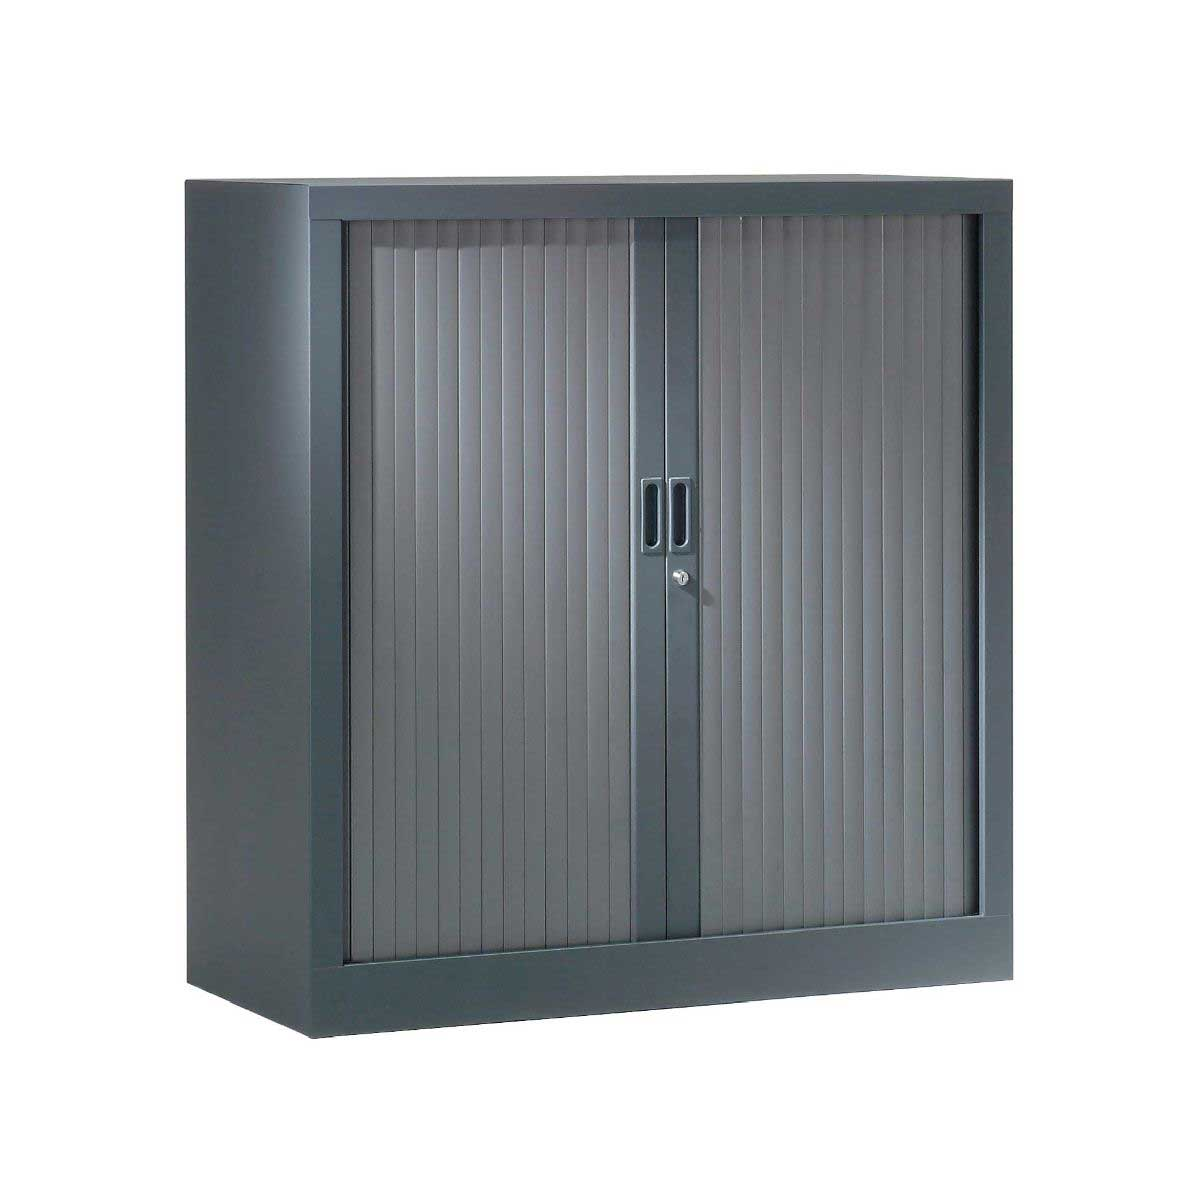 Pierre Henry Generic Tambour Cupboard Height 1000mm x 1000mm, Anthracite